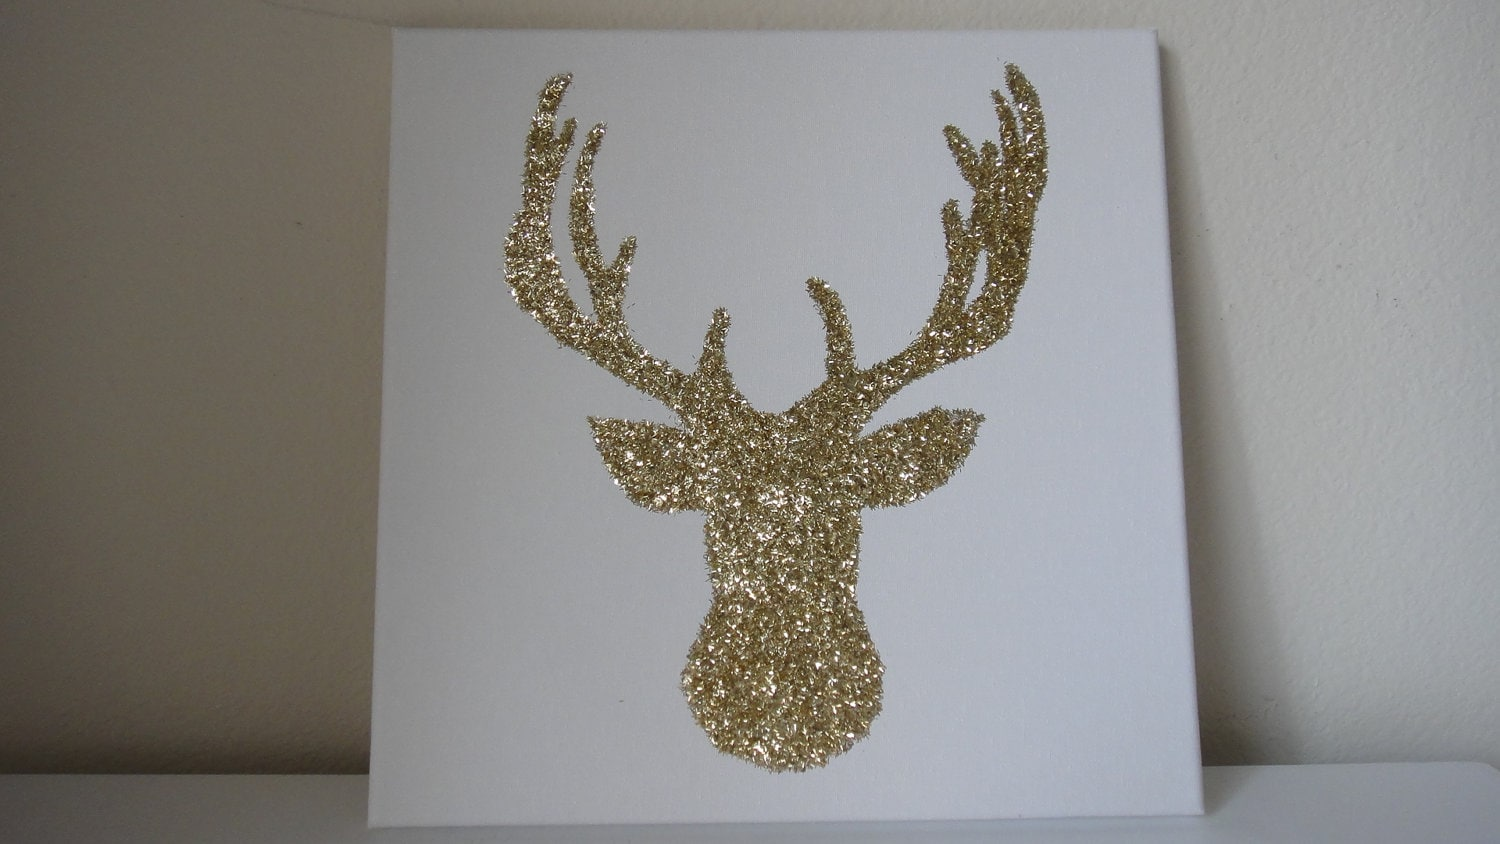 Wall Decor With Glitter : Gold glitter reindeer deer canvas wall art